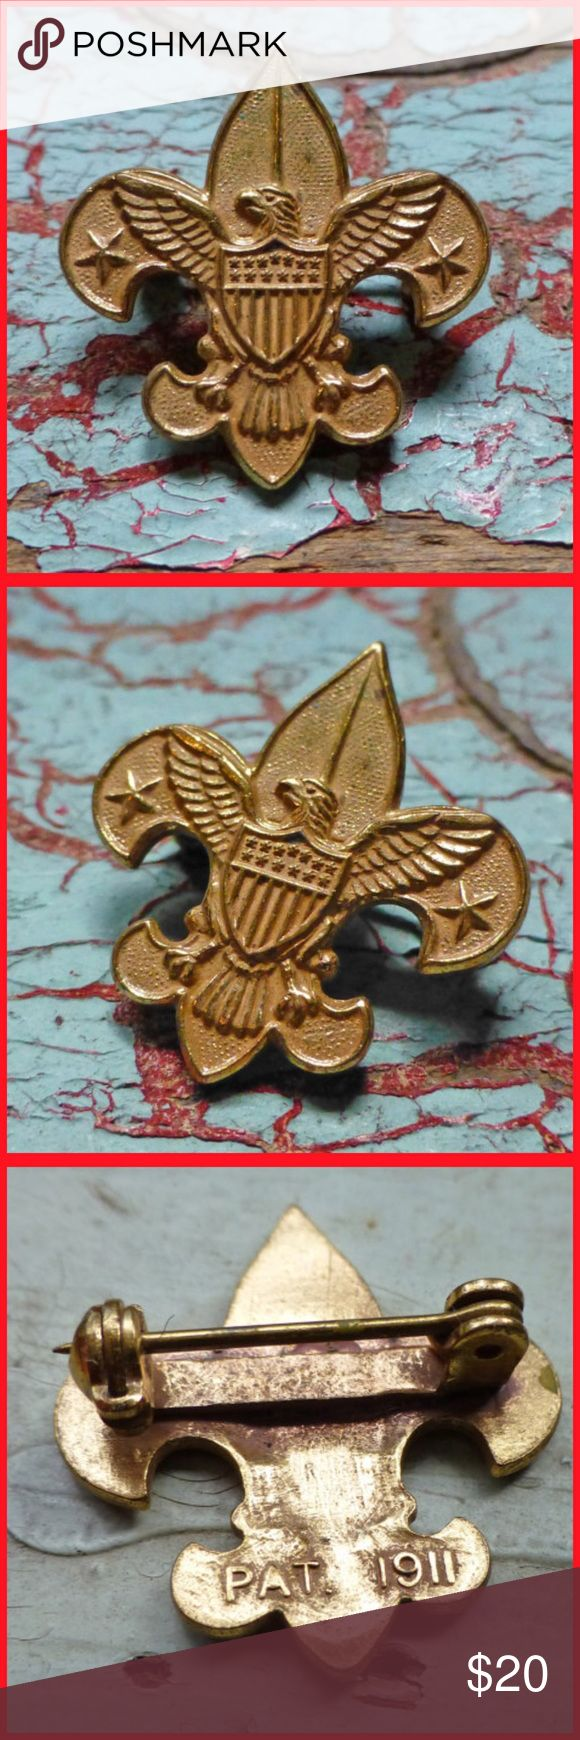 Spotted while shopping on Poshmark: Boy Scout Tenderfoot Badge Pin PAT 1911 on back! #poshmark #fashion #shopping #style #Vintage #Other